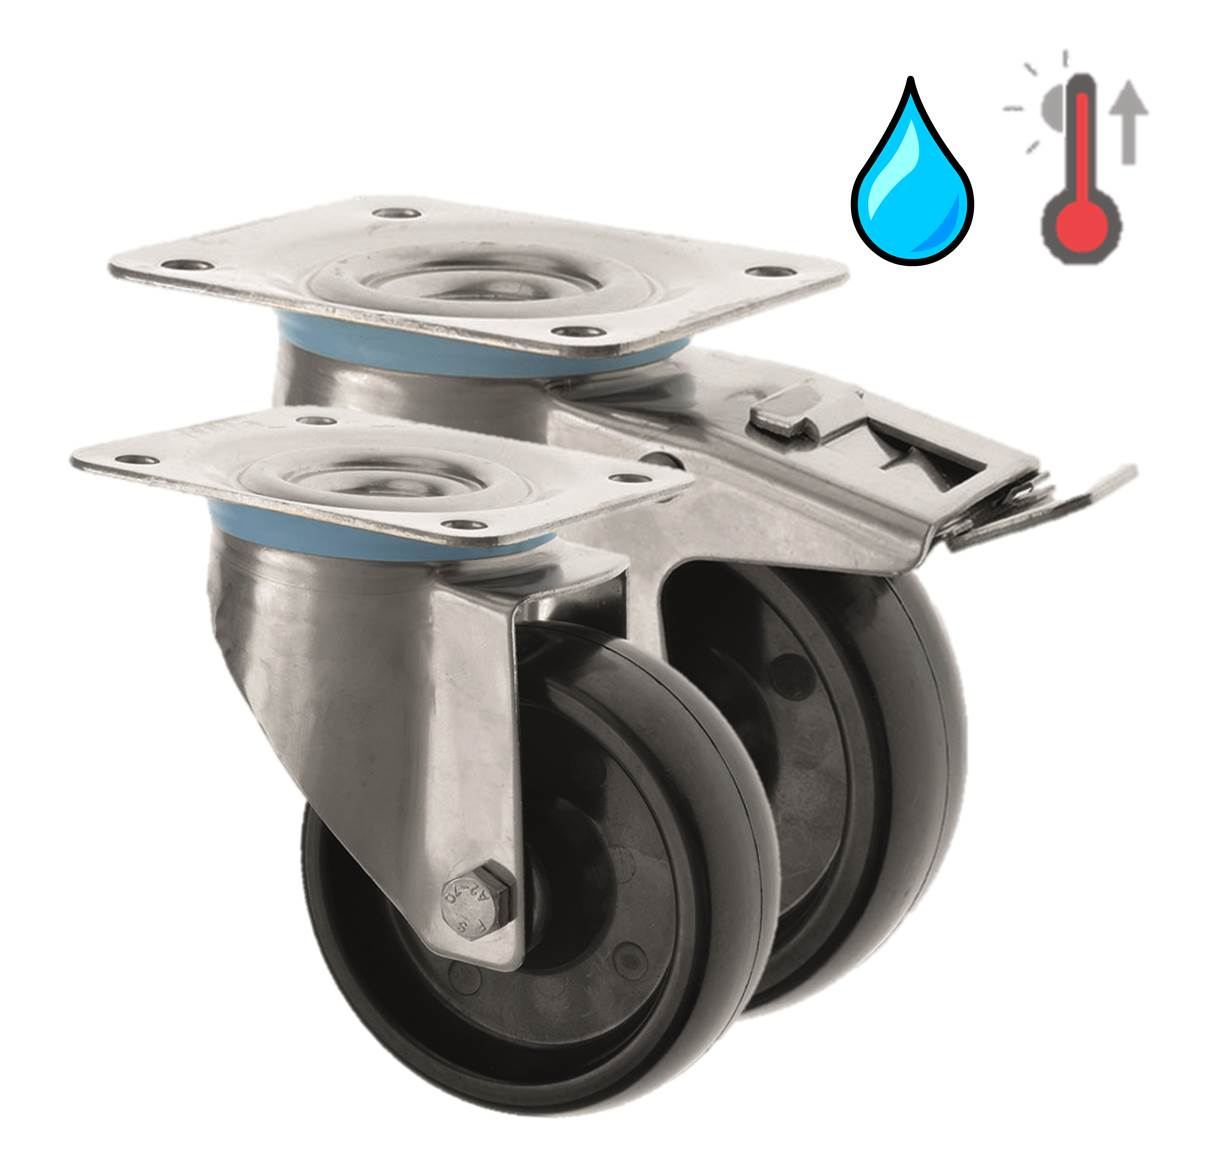 Stainless Steel High Temperature Castors Phenolic Resin